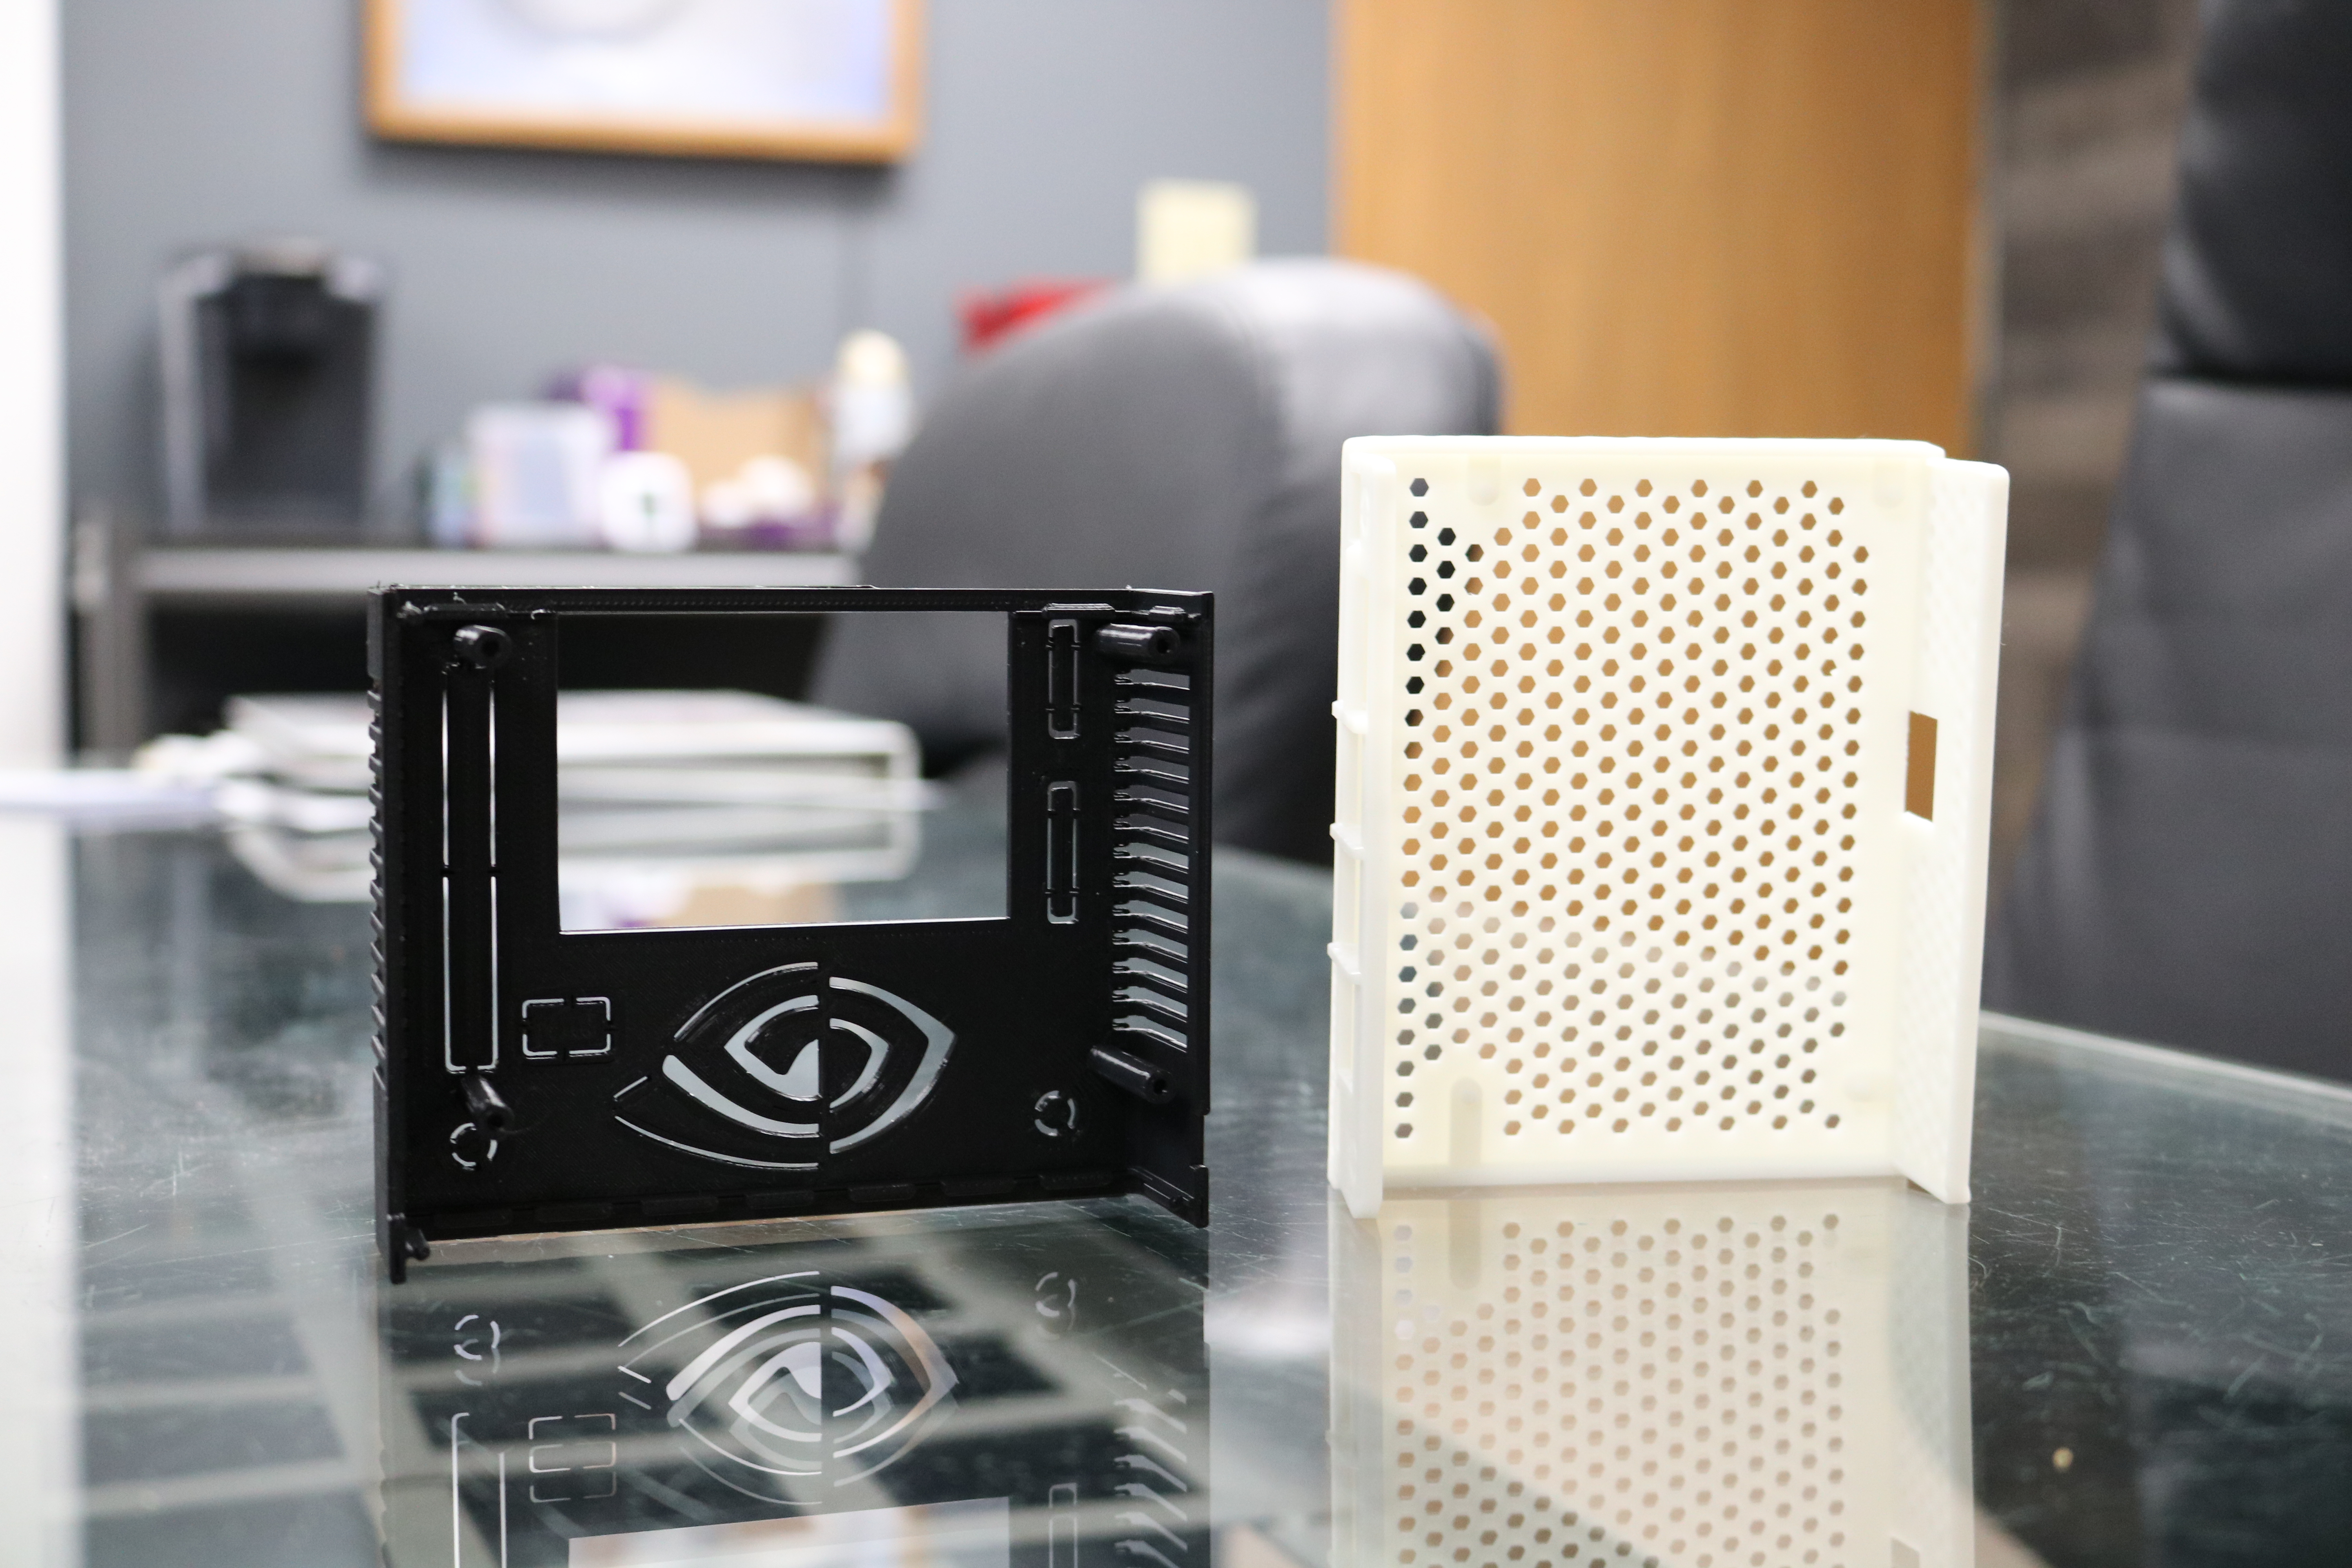 3D Printed Cases for Nvidia Jetson Nano